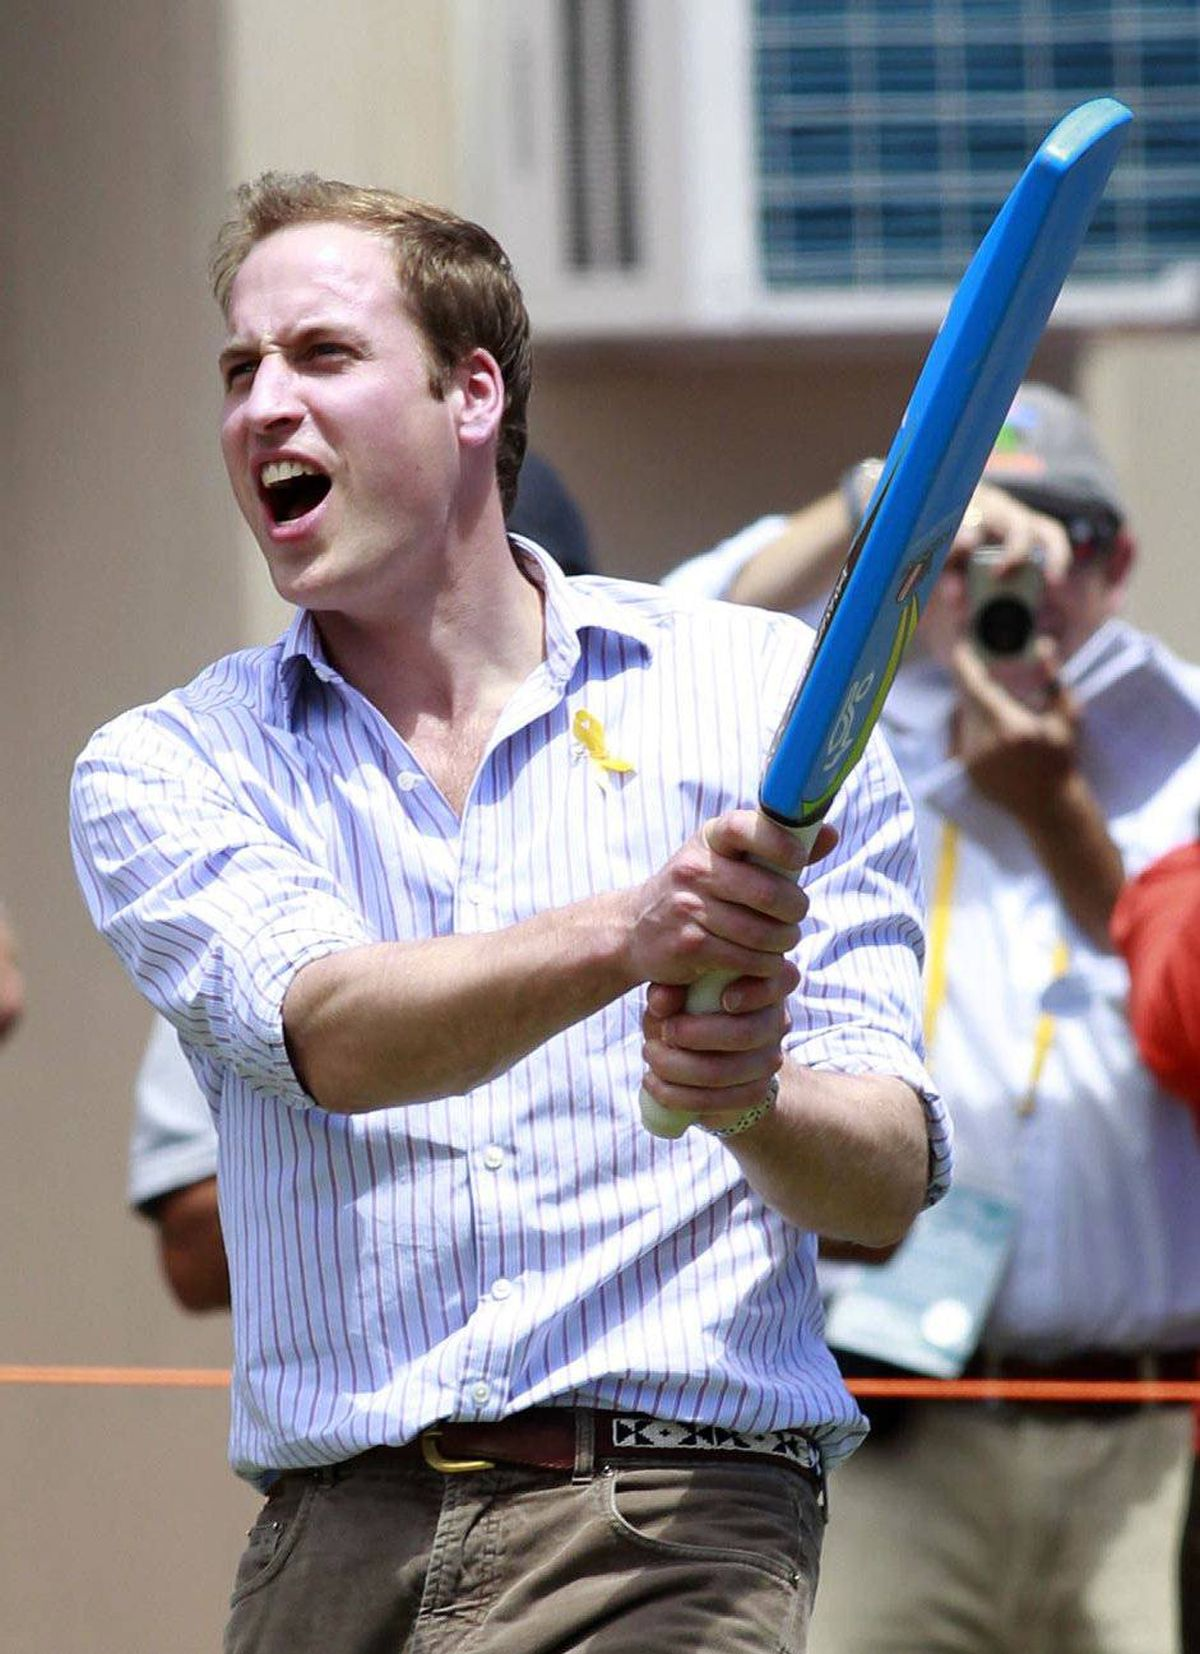 Prince William joins in a cricket game in Flowerdale, Australia, Jan. 21, 2010.